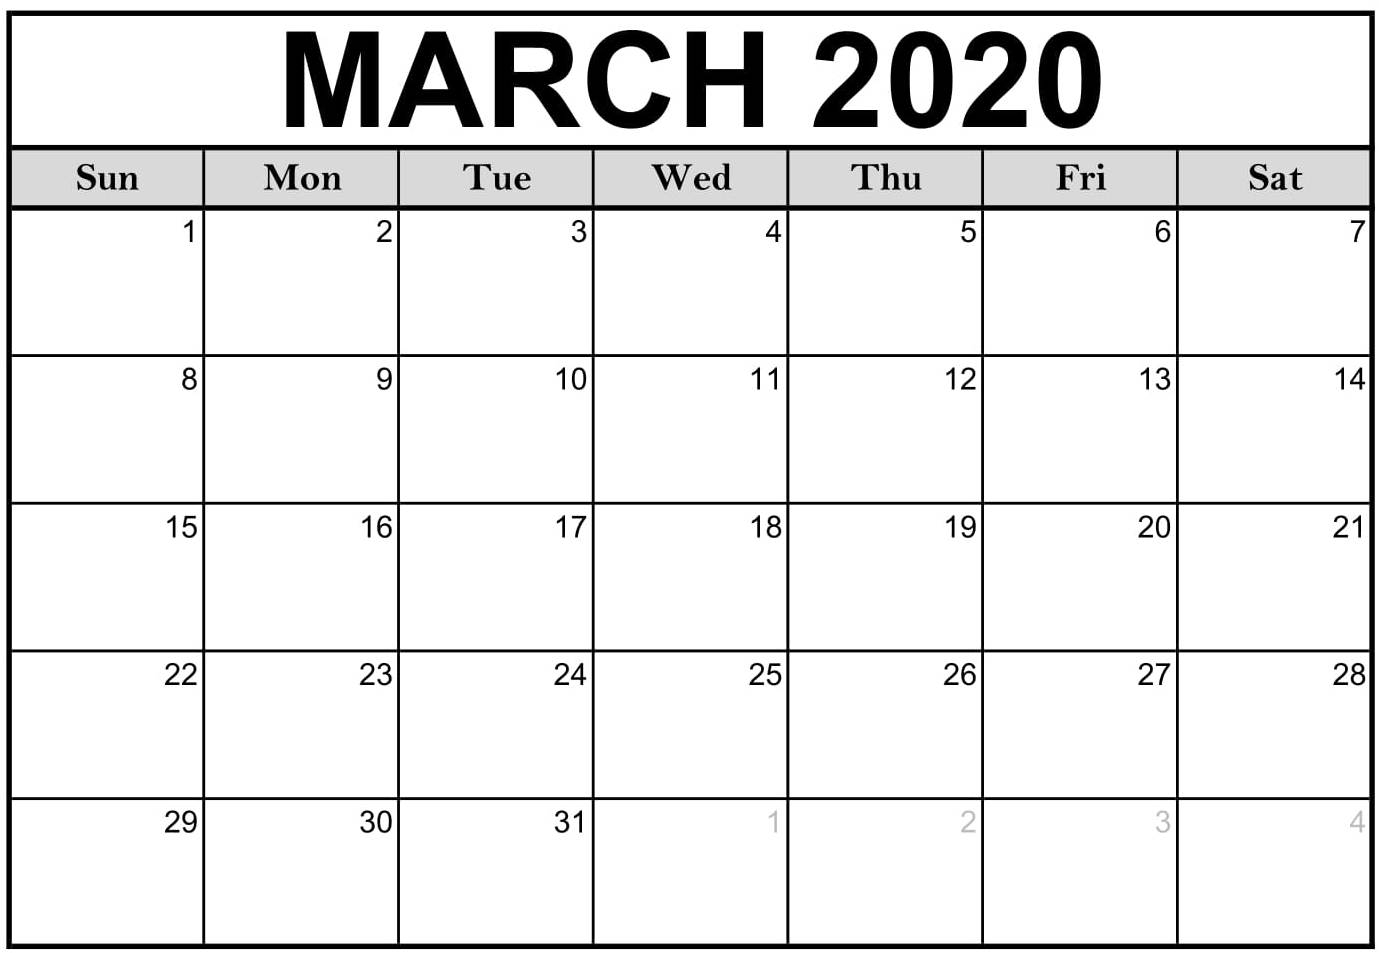 Printable 2020 March Calendar Pdf With Notes - Set Your Plan